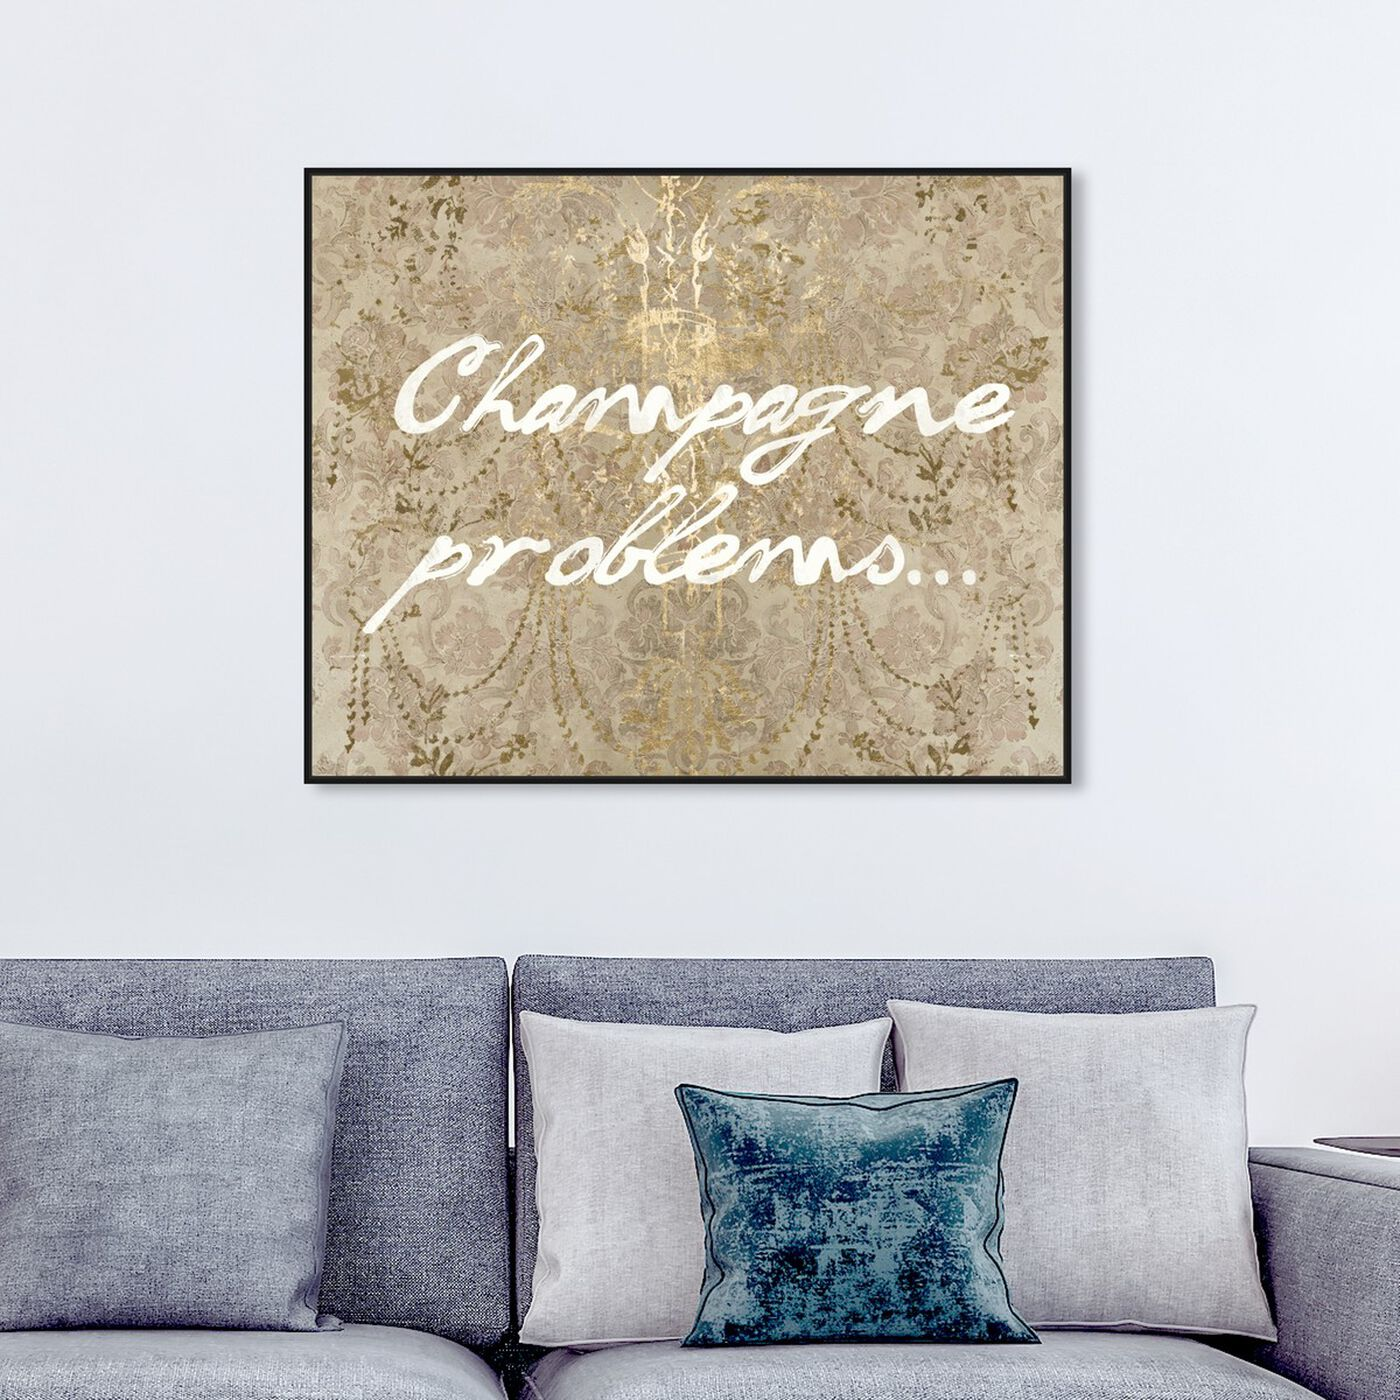 Hanging view of Champagne Issues featuring drinks and spirits and champagne art.